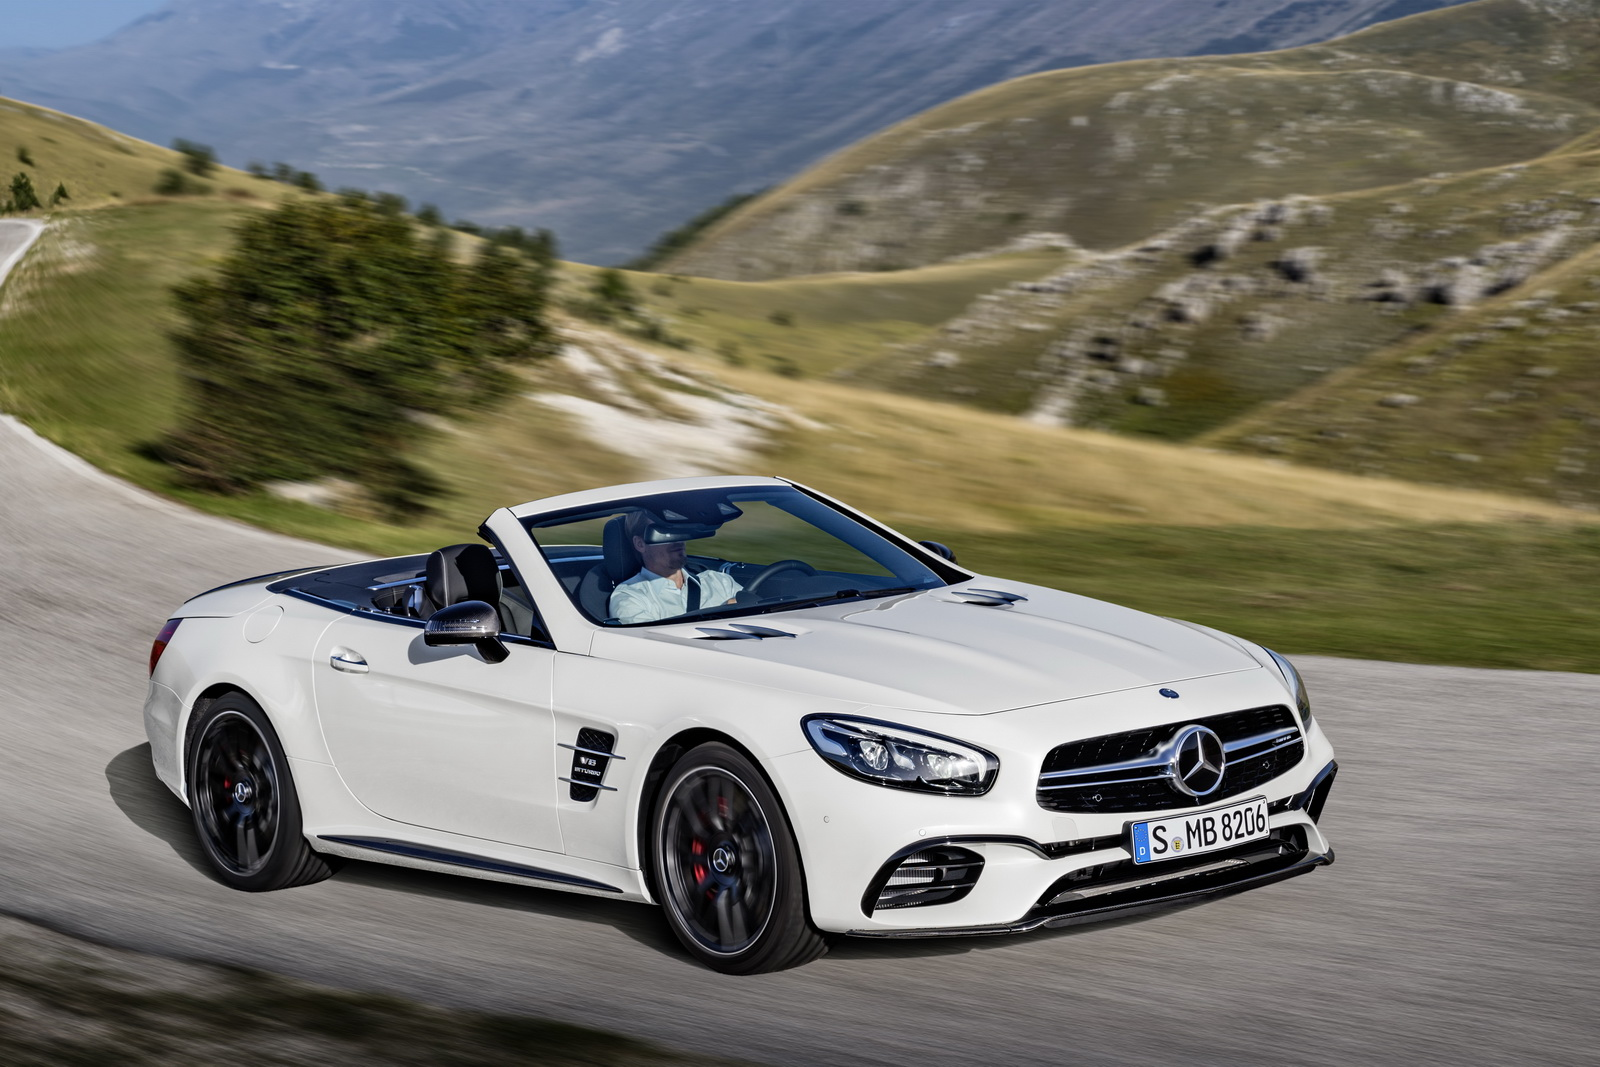 2017 mercedes amg sl 63 priced at 114 100 in the uk gtspirit. Black Bedroom Furniture Sets. Home Design Ideas